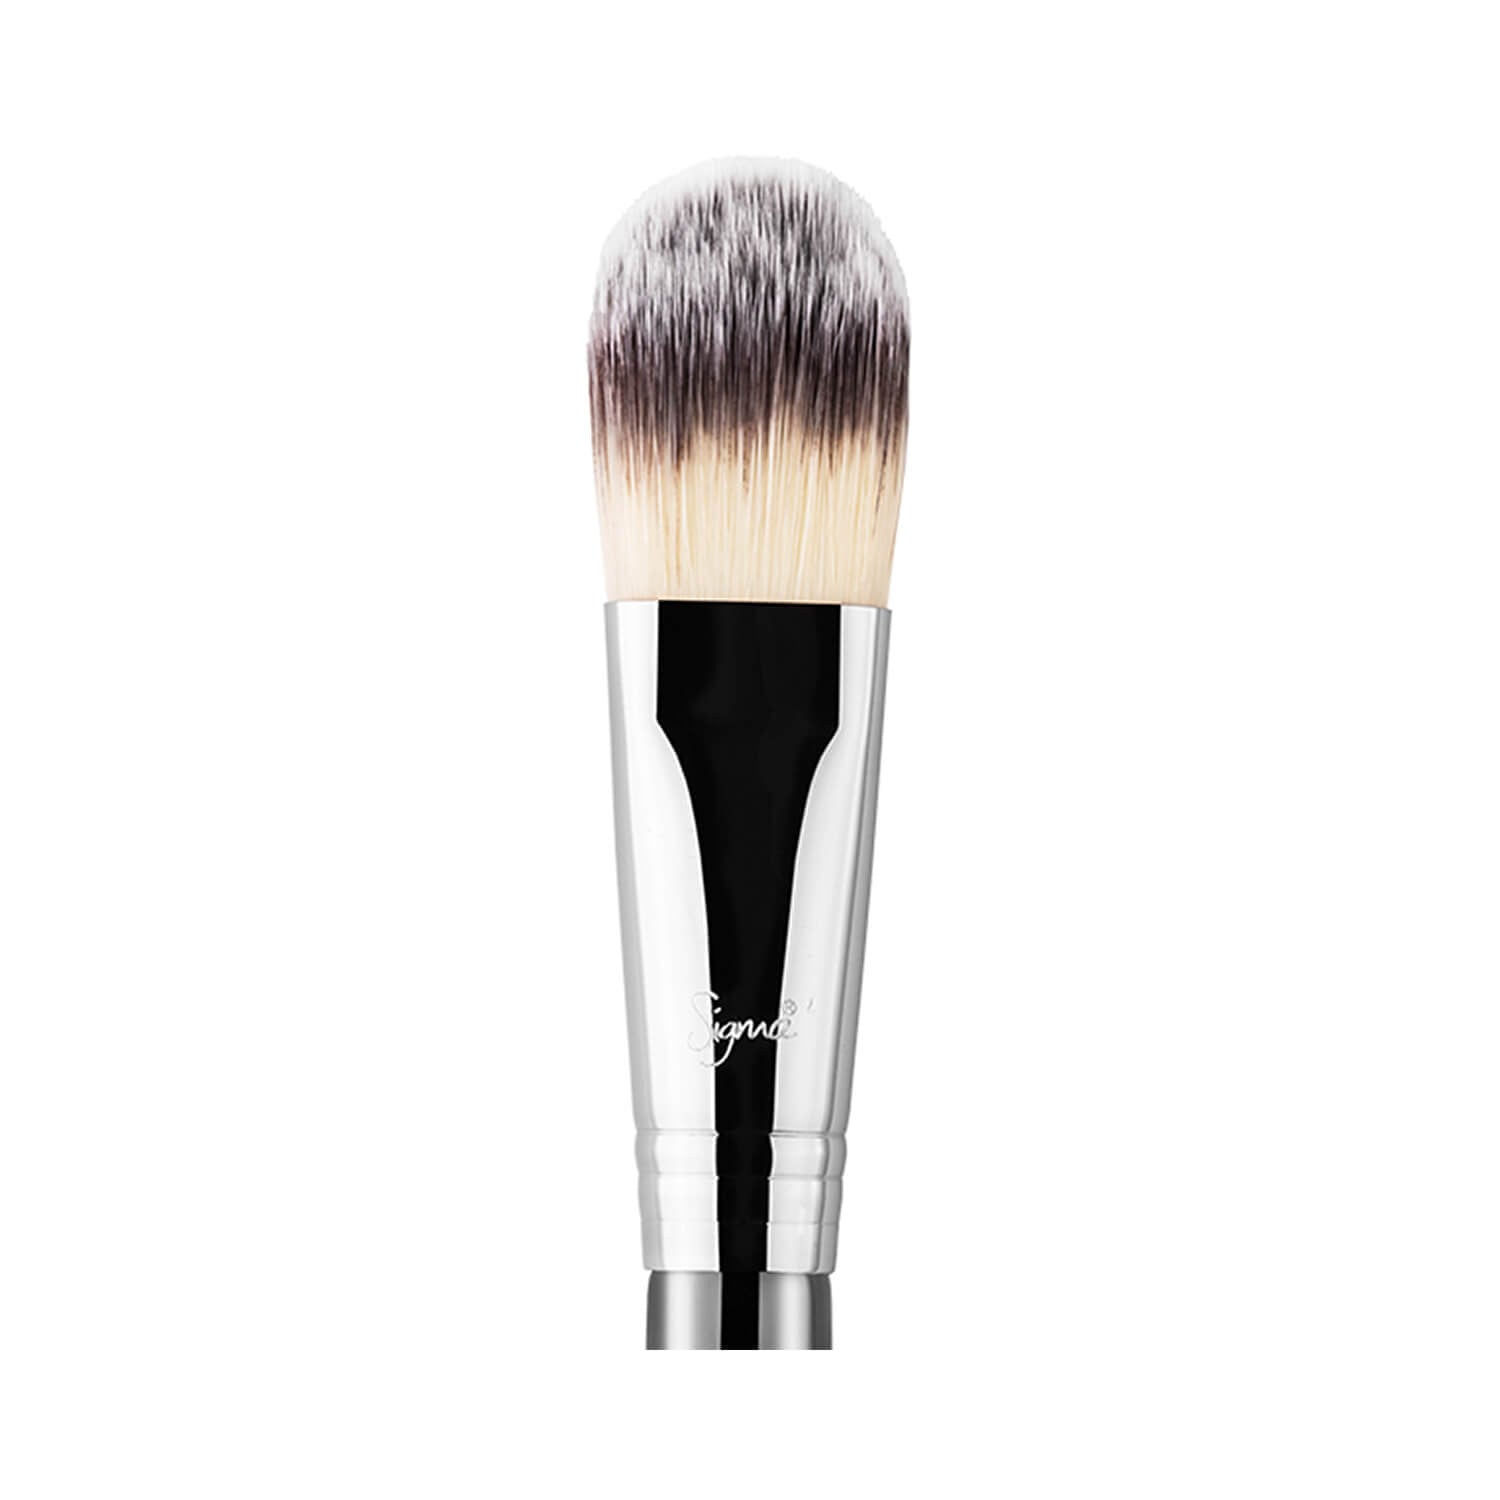 Sigma Beauty F60 Foundation Brush Chrome